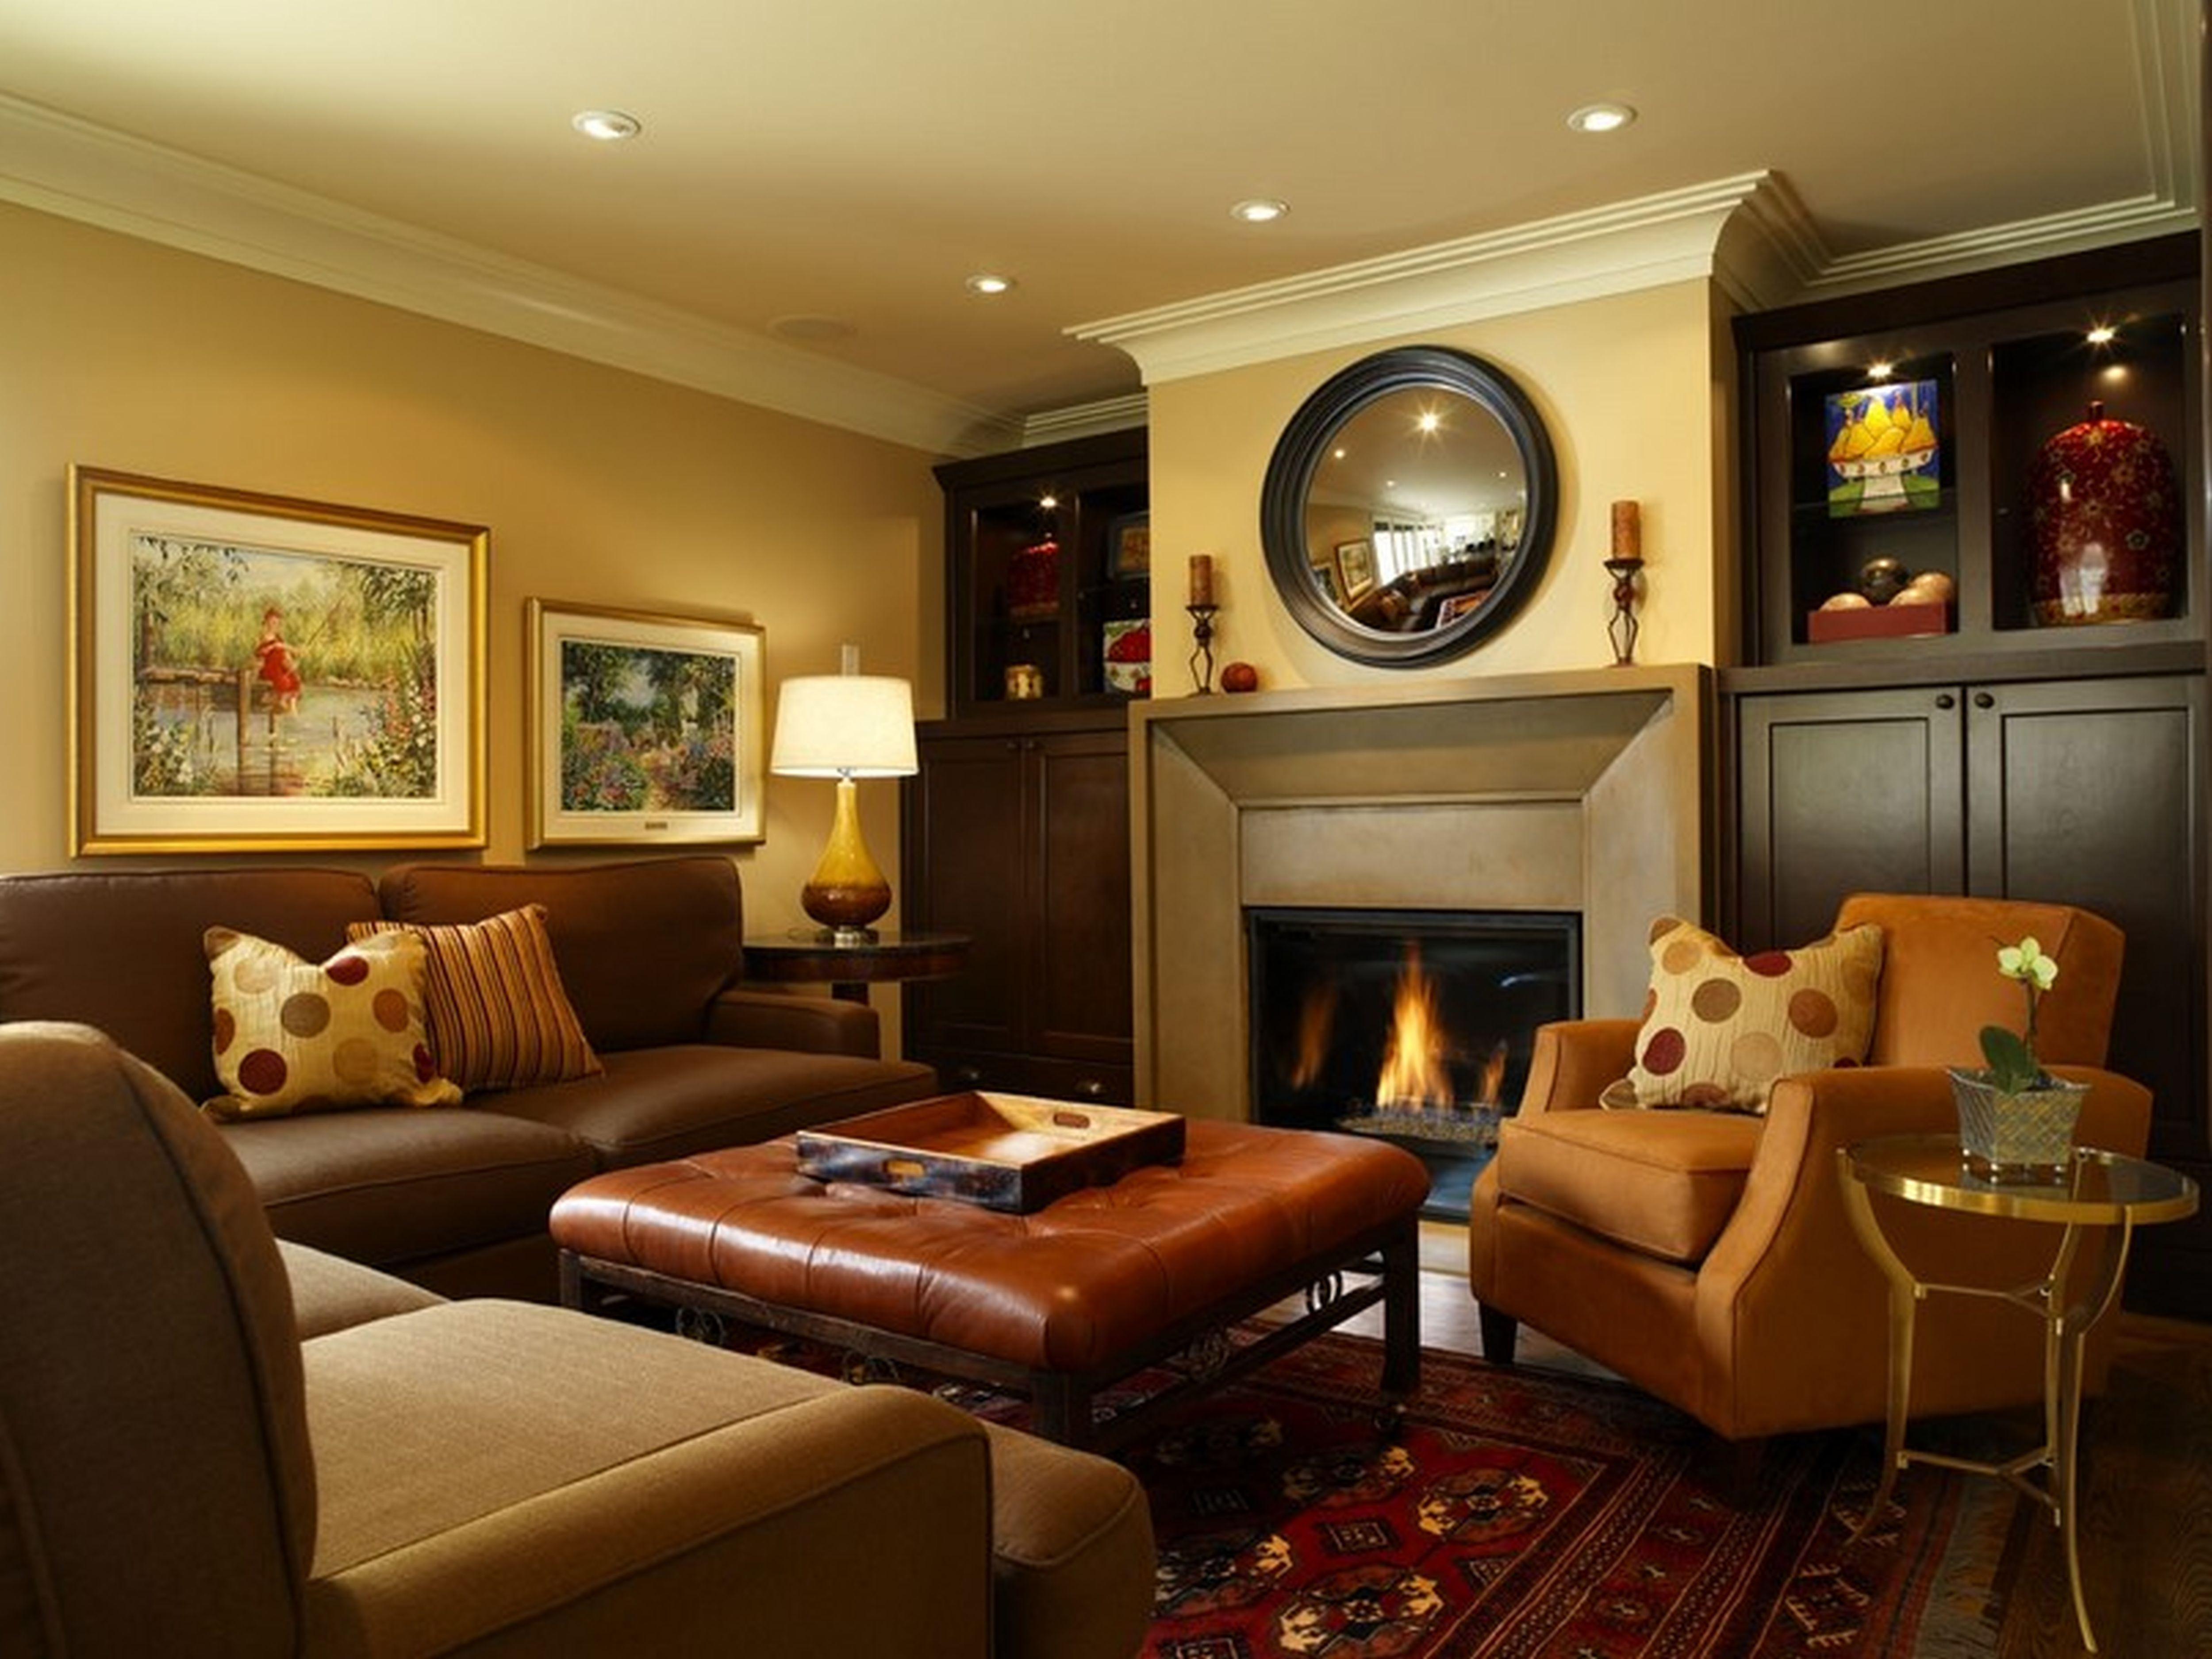 Best ideas about Basement Family Room Ideas . Save or Pin Basement Living Room Ideas Homeideasblog Now.